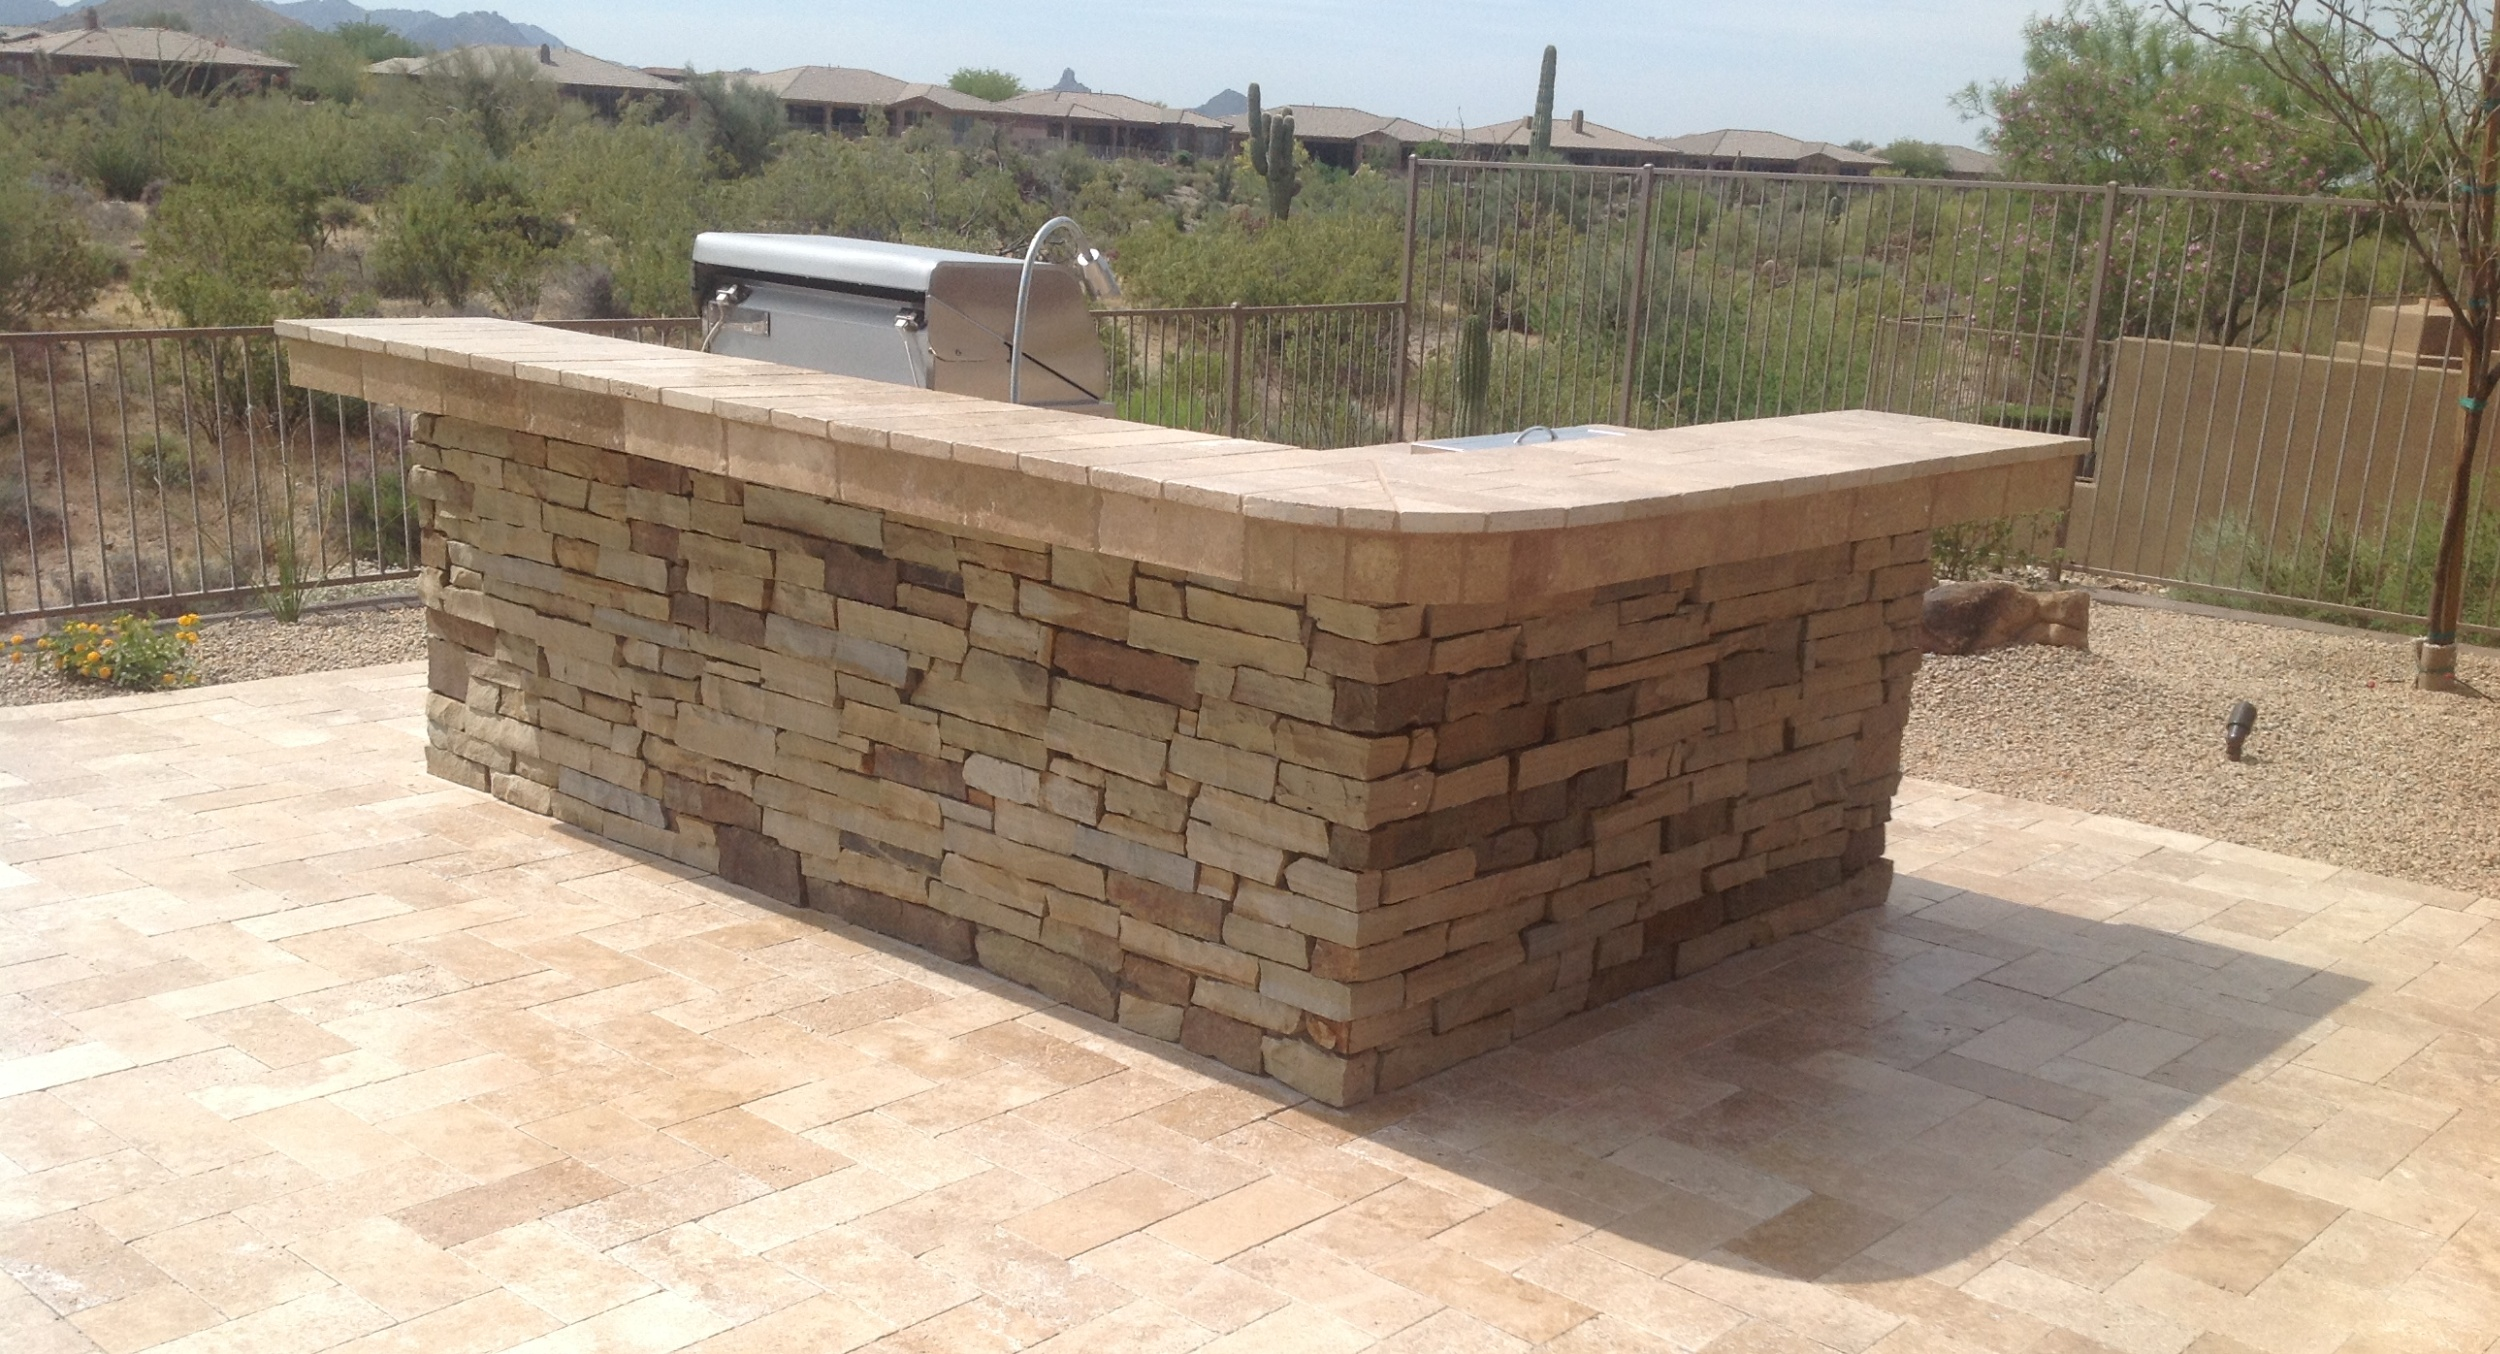 Entertain a lot? Consider the asset of having a Scottsdale built-in BBQ with a wrap around bar that seats 6 and doubles as serving space. A lovely natural stone design.